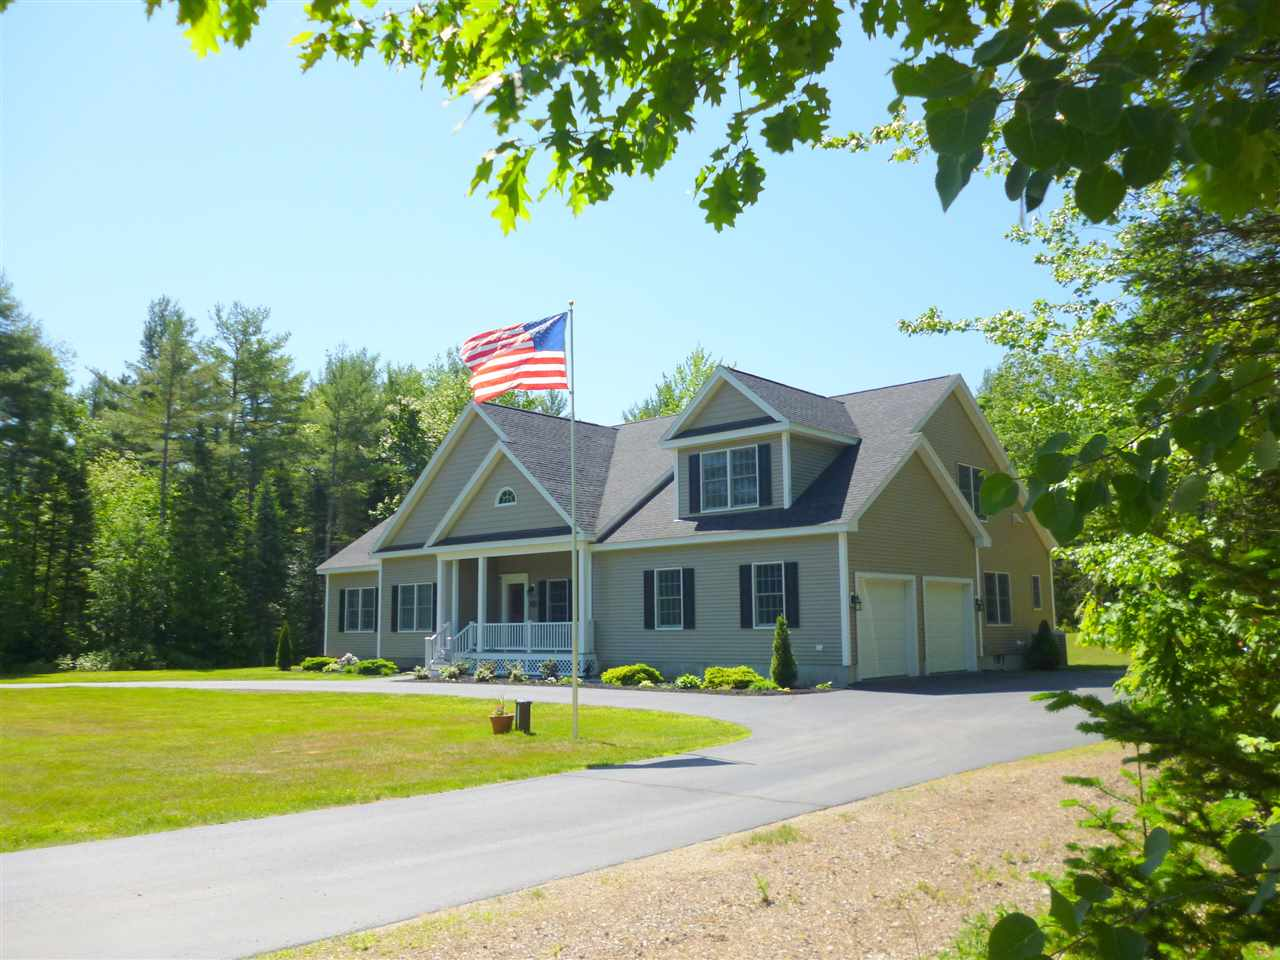 VILLAGE OF MELVIN VILLAGE IN TOWN OF TUFTONBORO NH Homes for sale